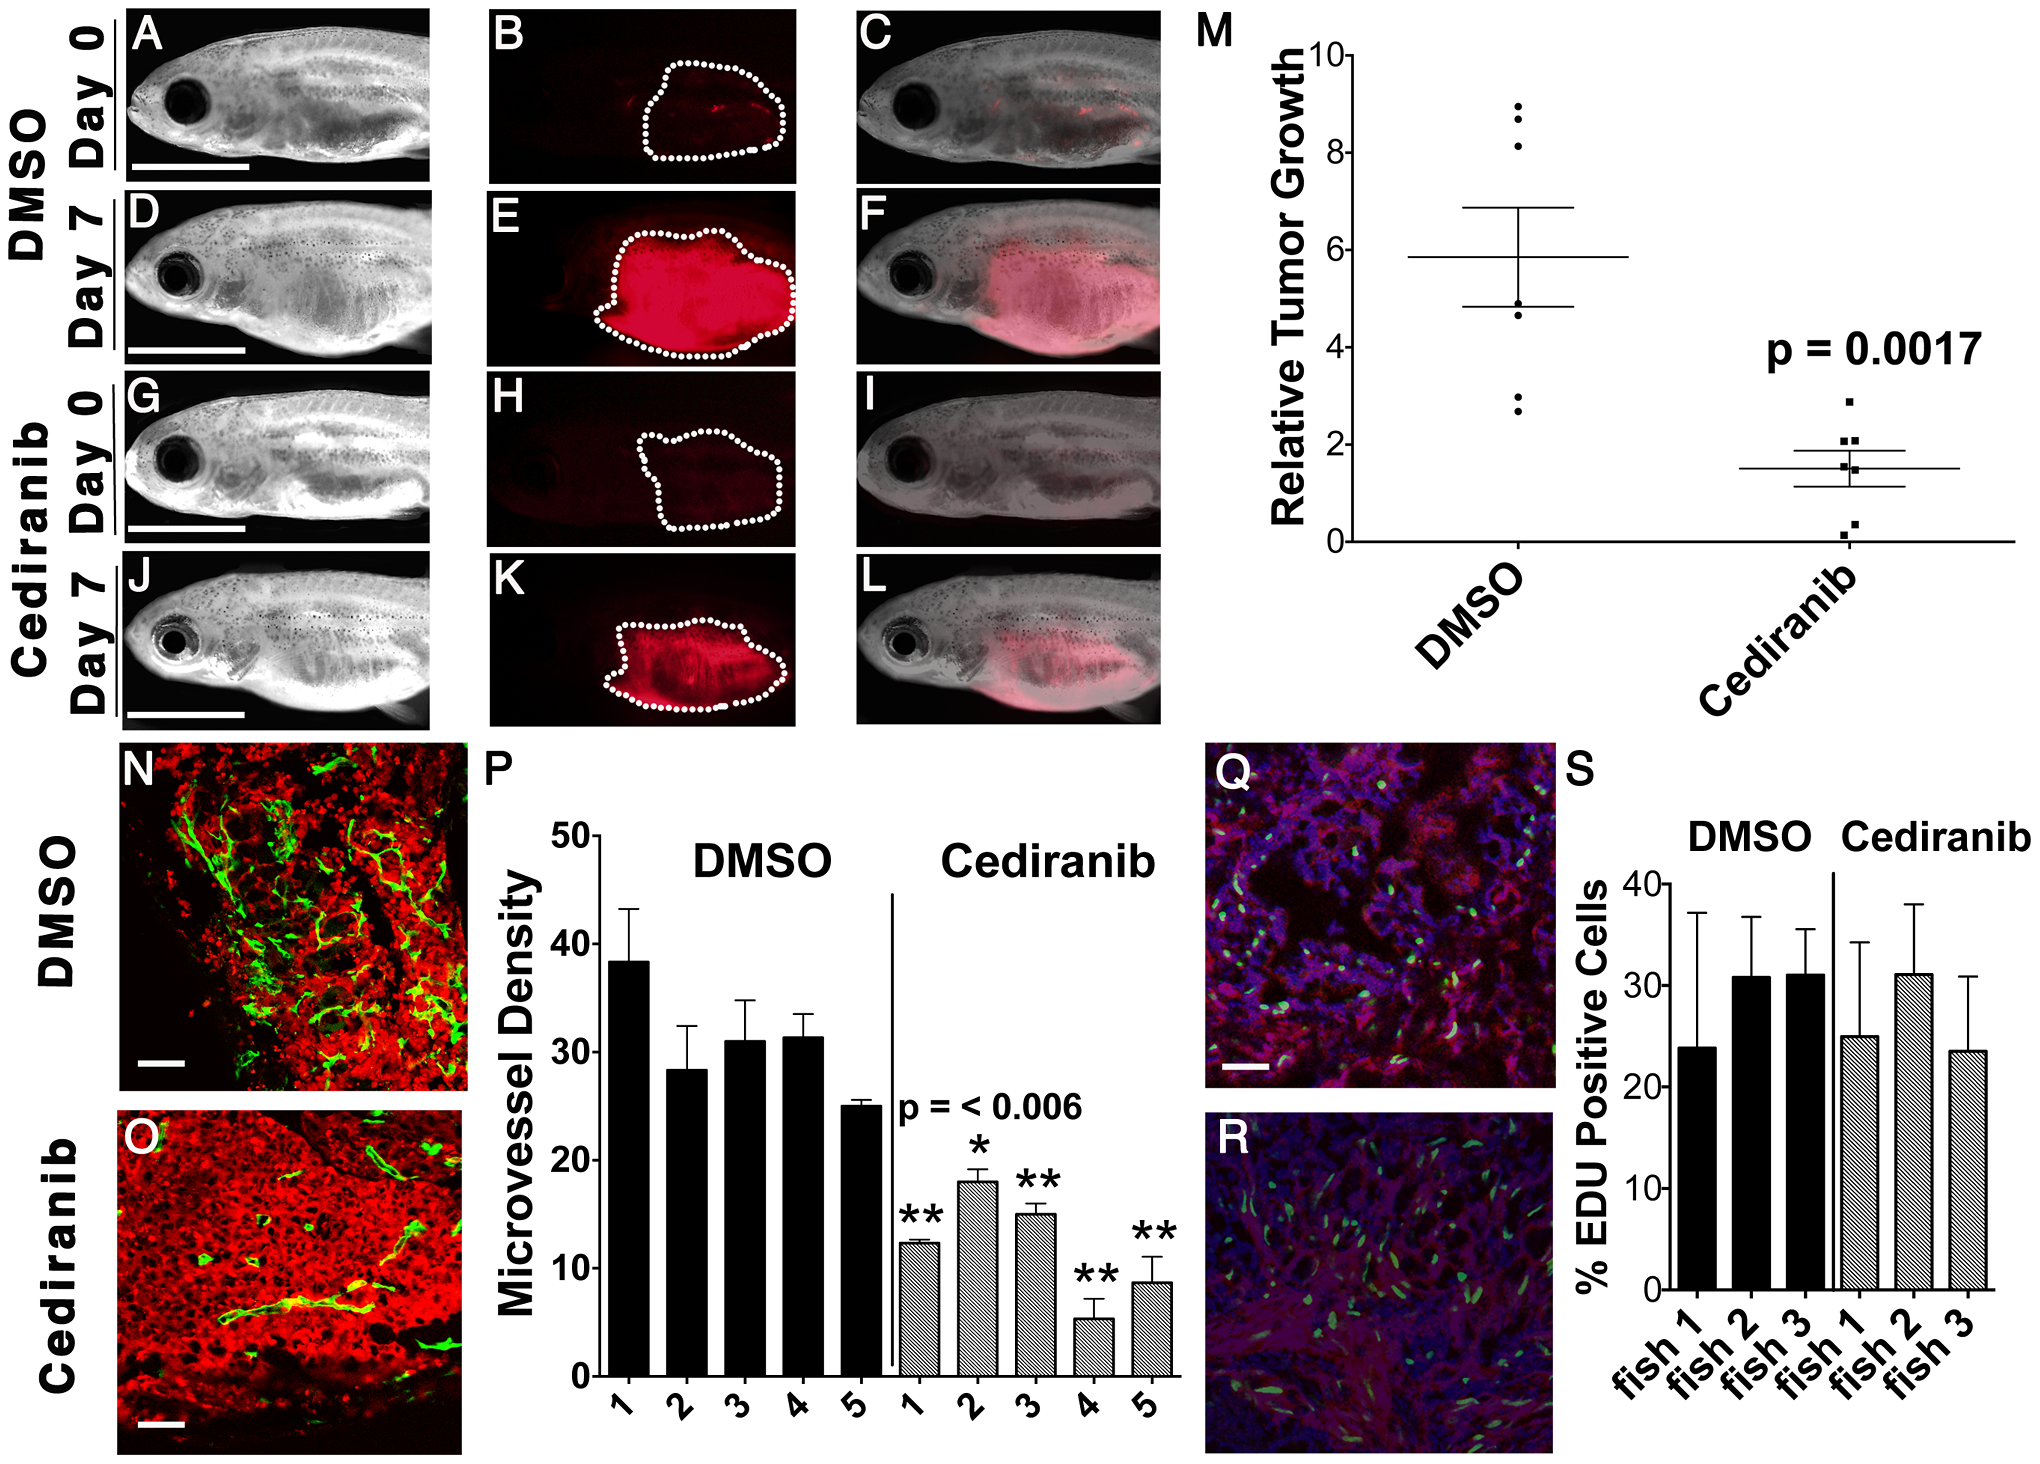 Chemical inhibition of VEGF signaling by cediranib reduces ERMS growth <i>in vivo</i>.